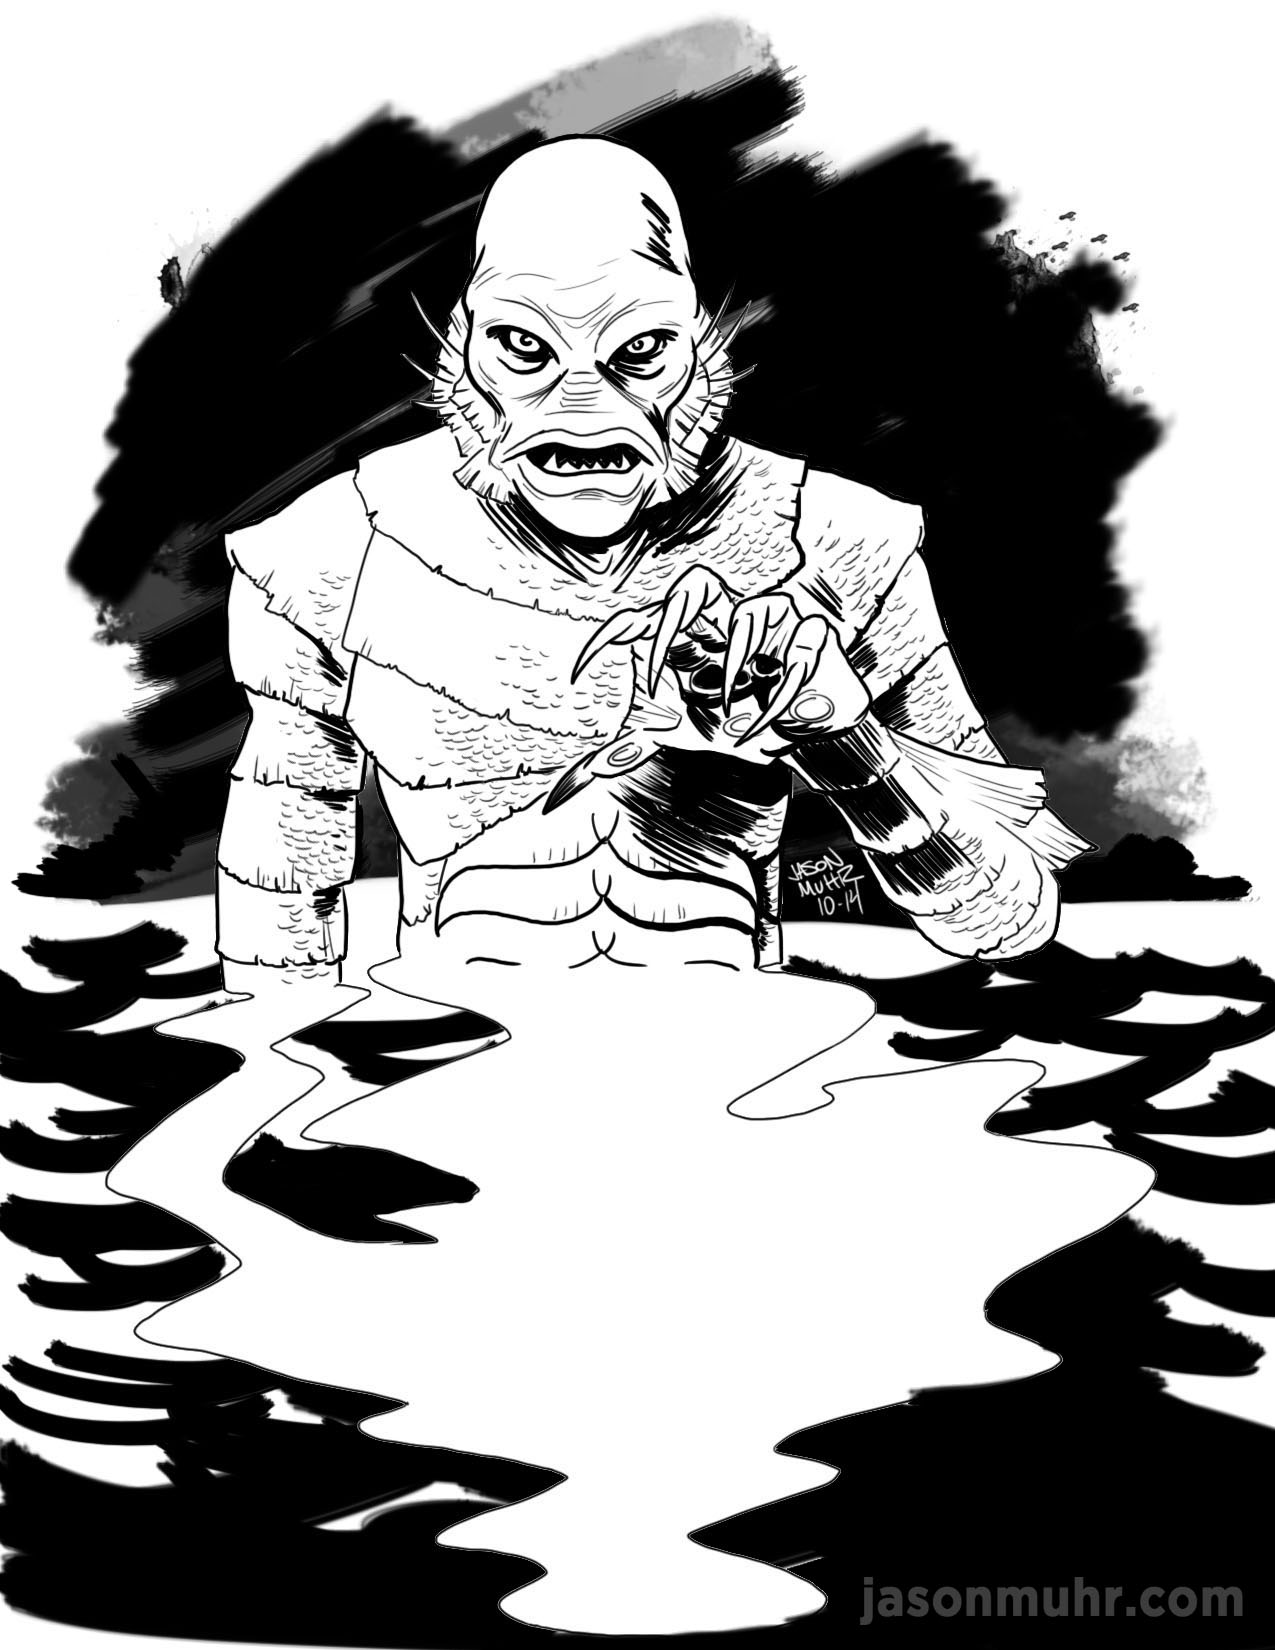 creature black lagoon jason muhr.jpeg